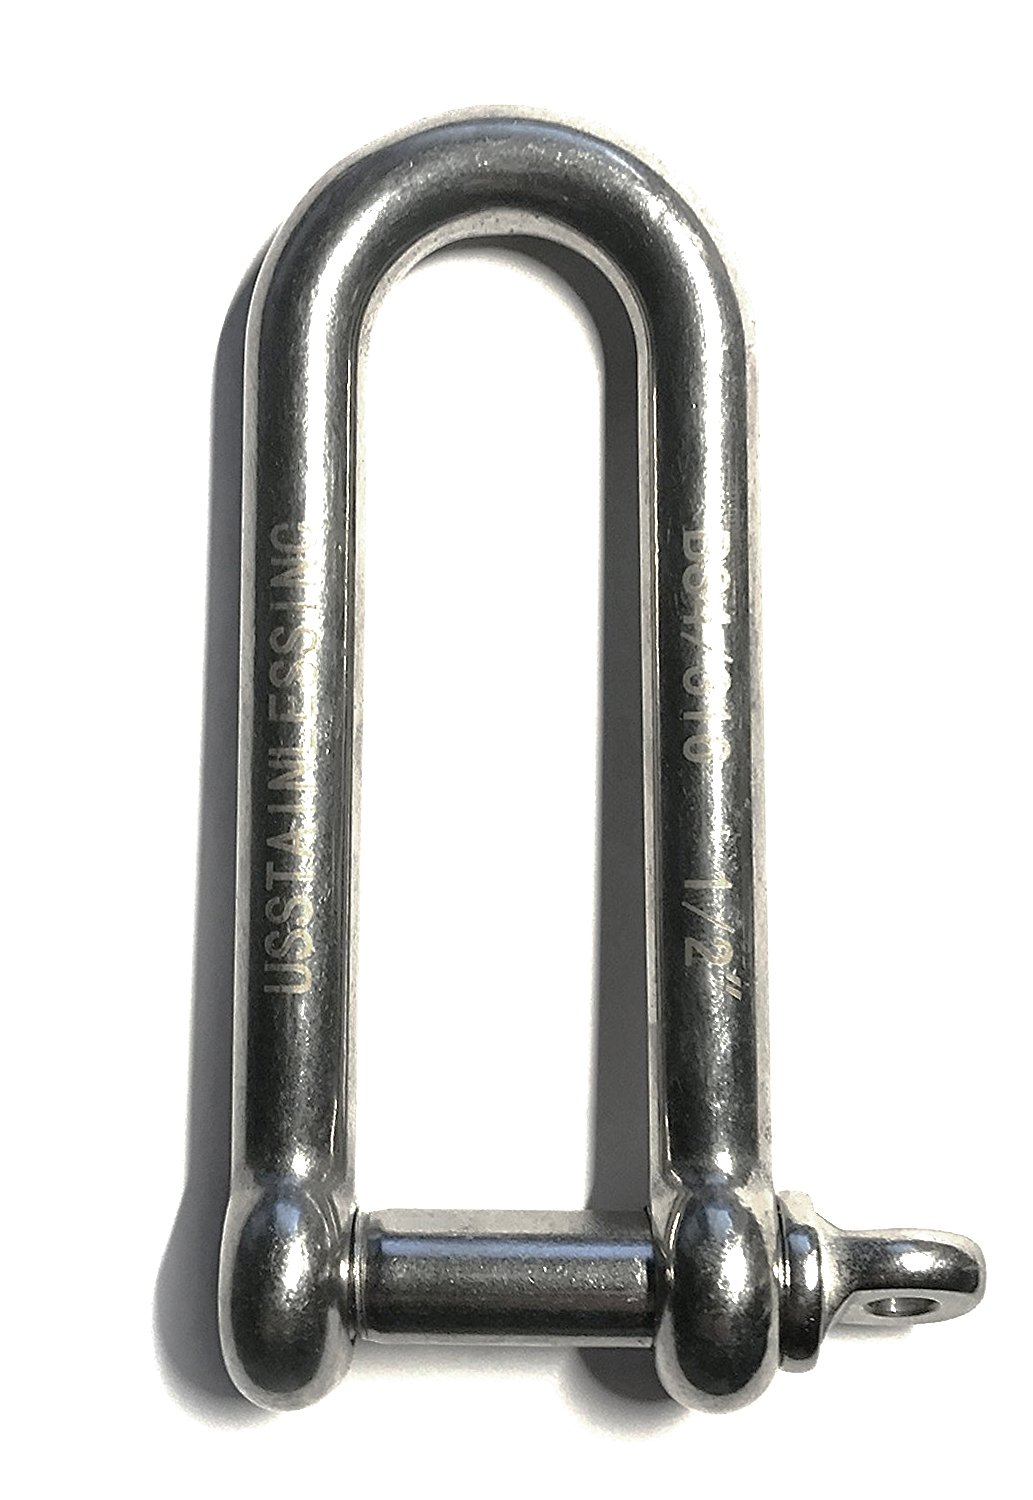 Stainless Steel 316 Long D Shackle 1/2'' (12mm) Marine Grade Dee